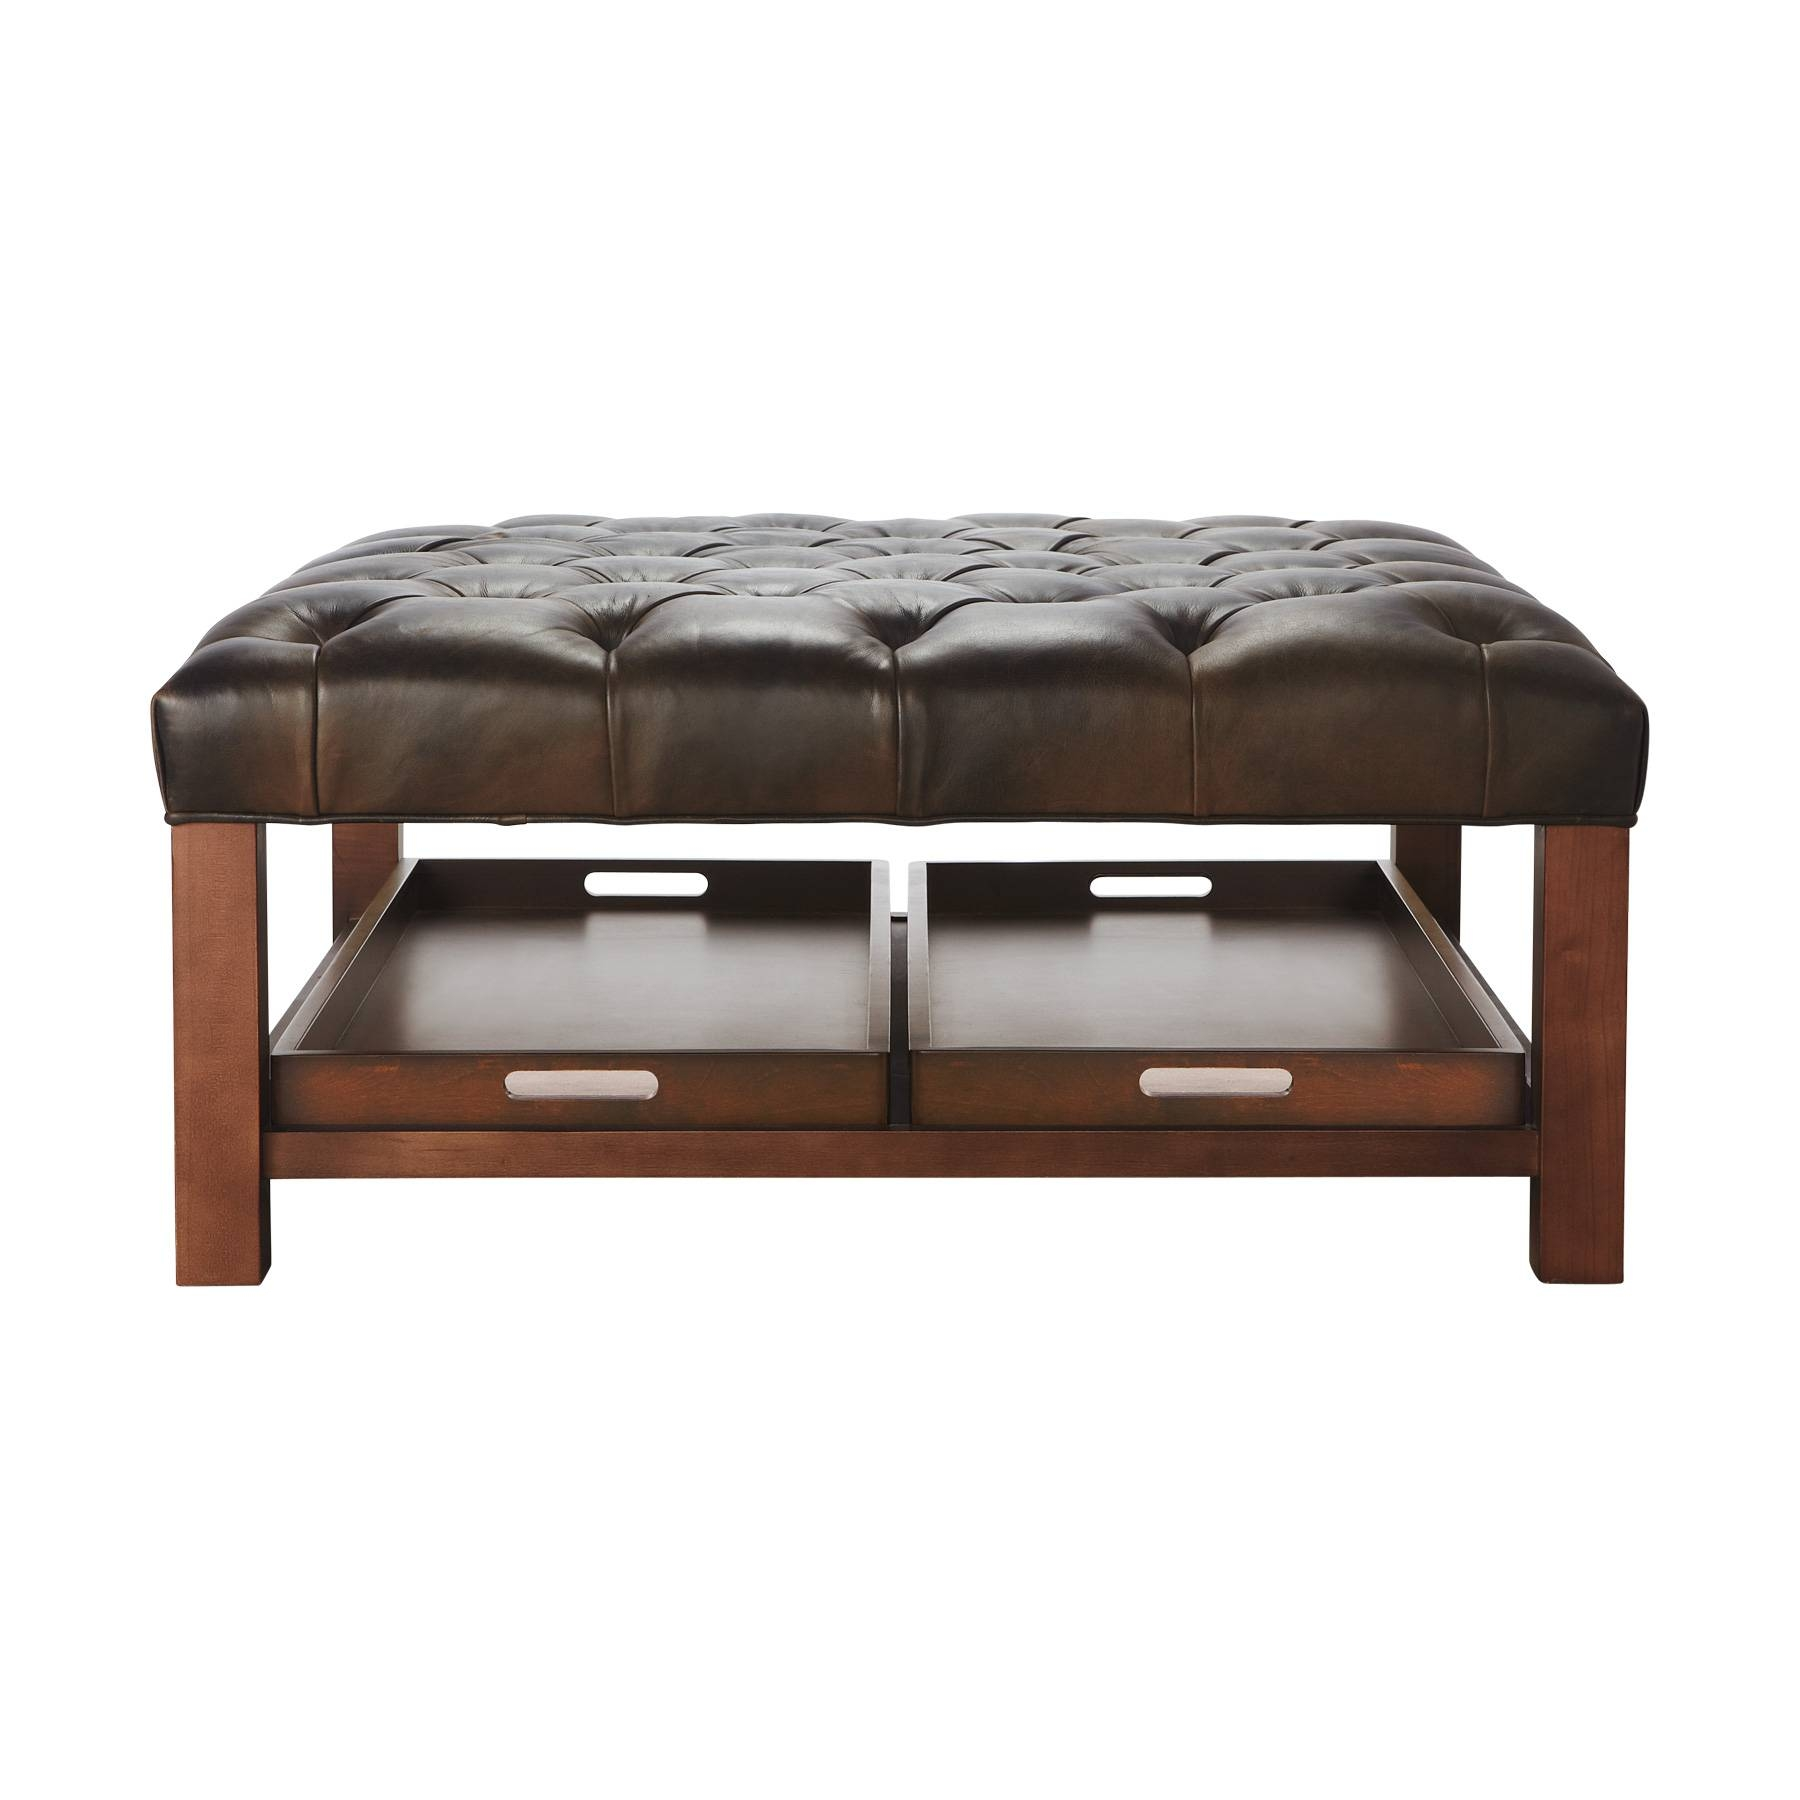 Leather Coffee Table With Storage And Trays | Coffee Tables Decoration in Square Coffee Tables With Storages (Image 18 of 30)